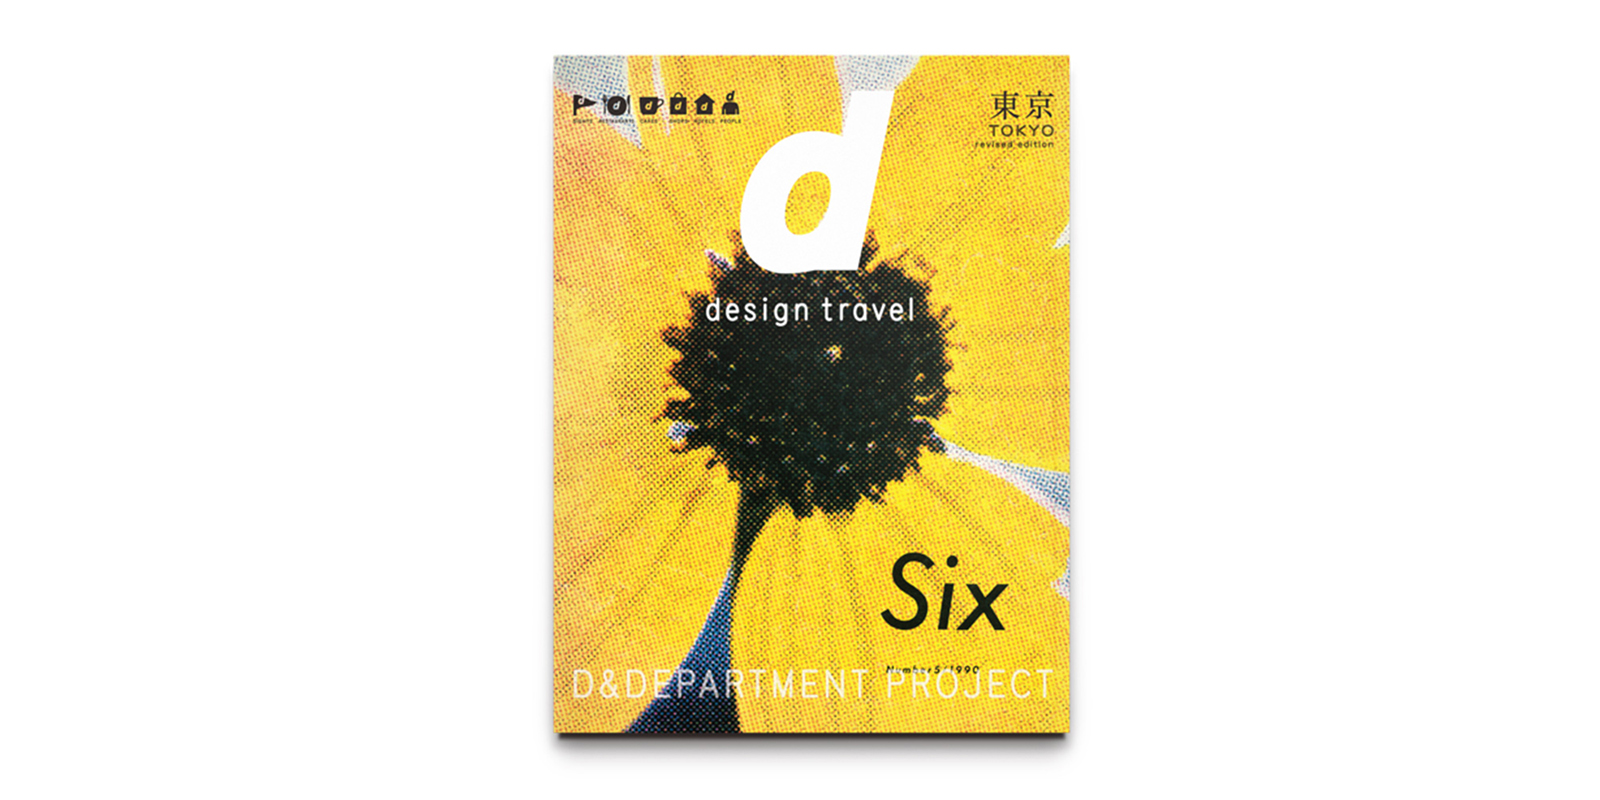 d design travel 東京